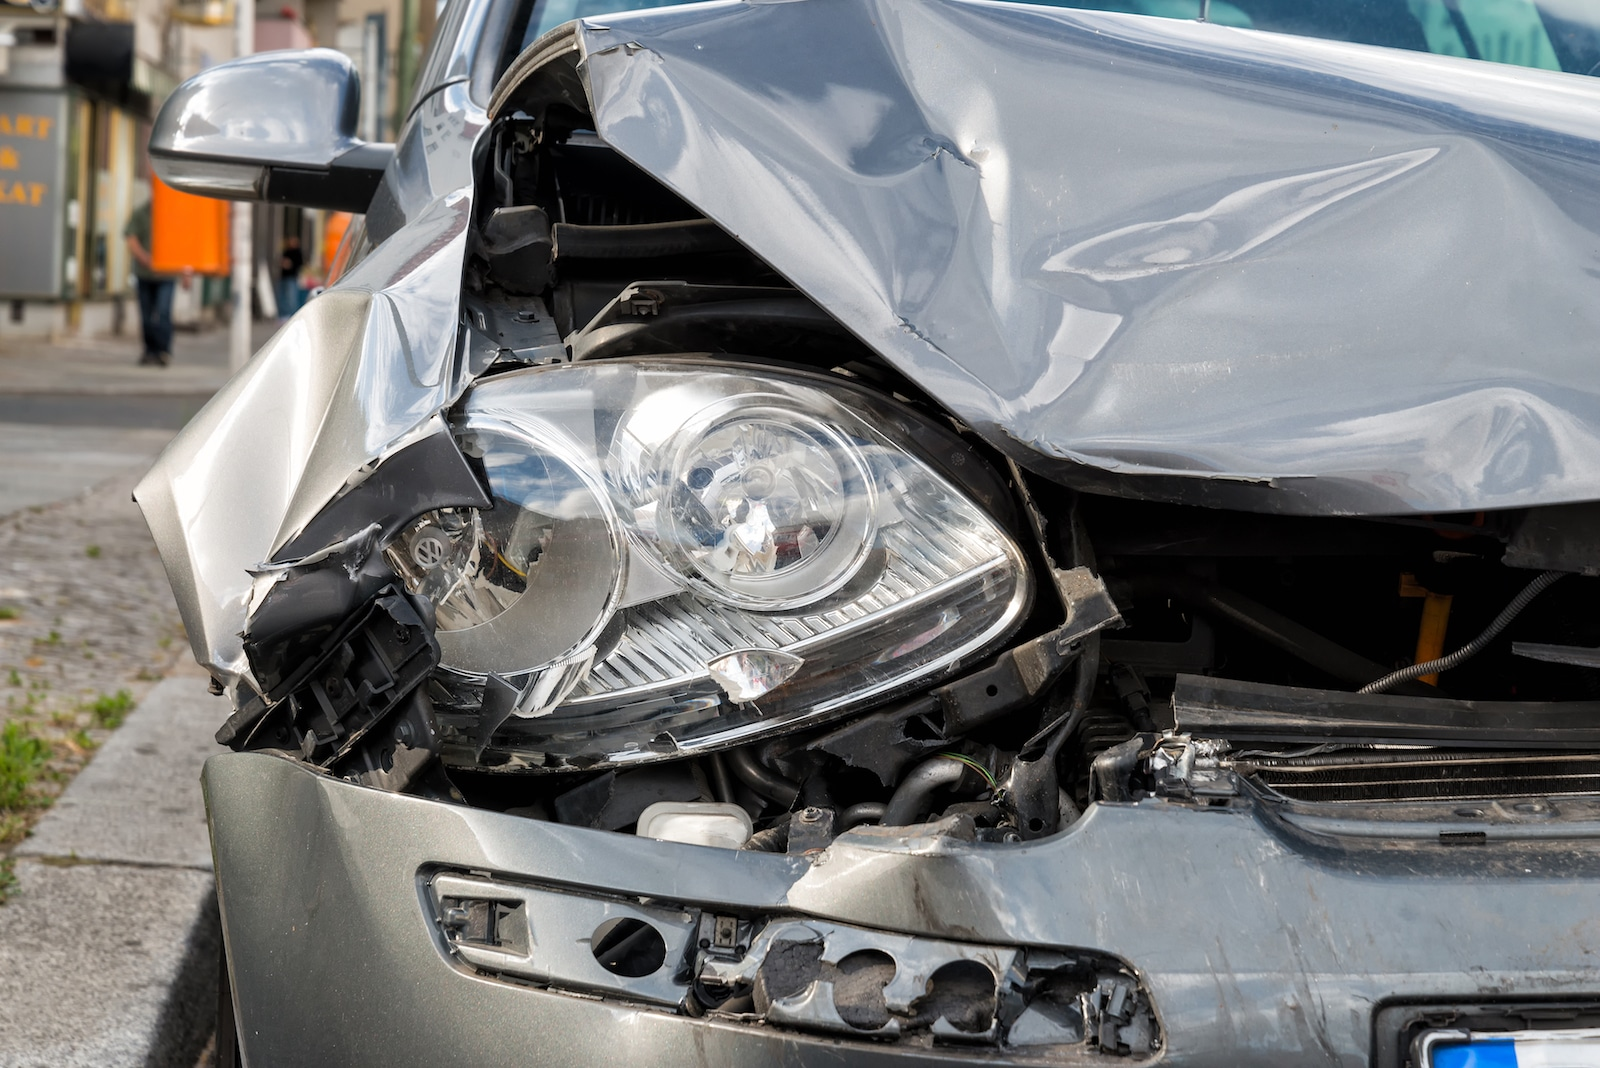 Totaled Loss Car Insurance Settlement: How to Get More For Your Total Loss Vehicle Settlement (2021)